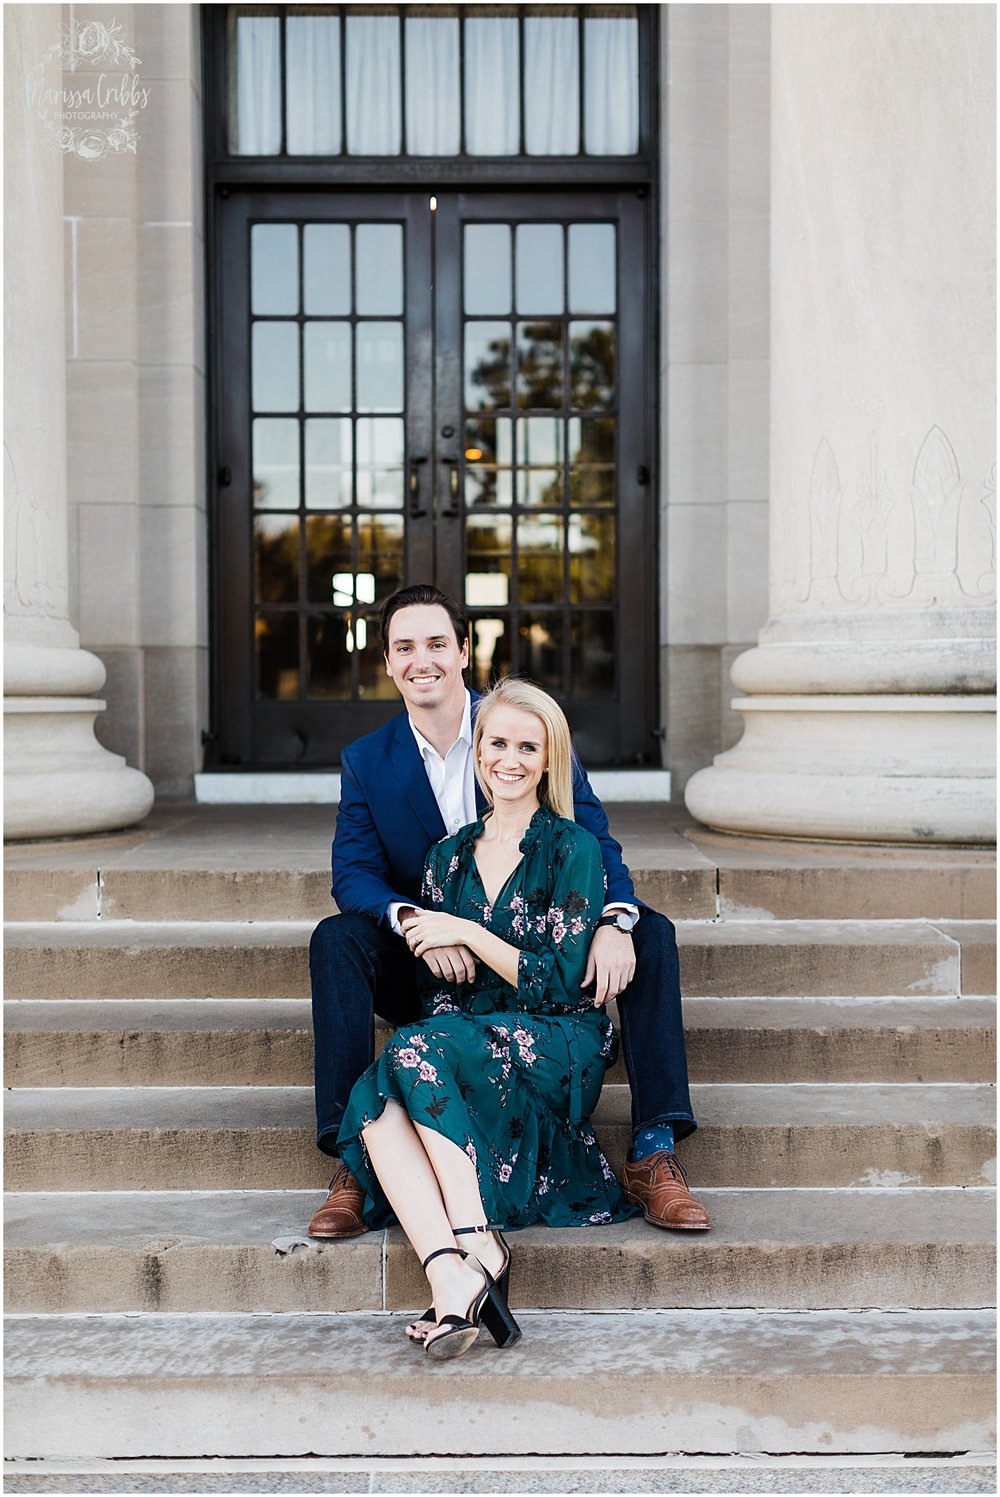 HALEY & CHASE ENGAGED LOOSE PARK & NELSON ATKINS | FALL ENGAGEMENT PHOTOS | MARISSA CRIBBS PHOTOGRAPHY_6855.jpg